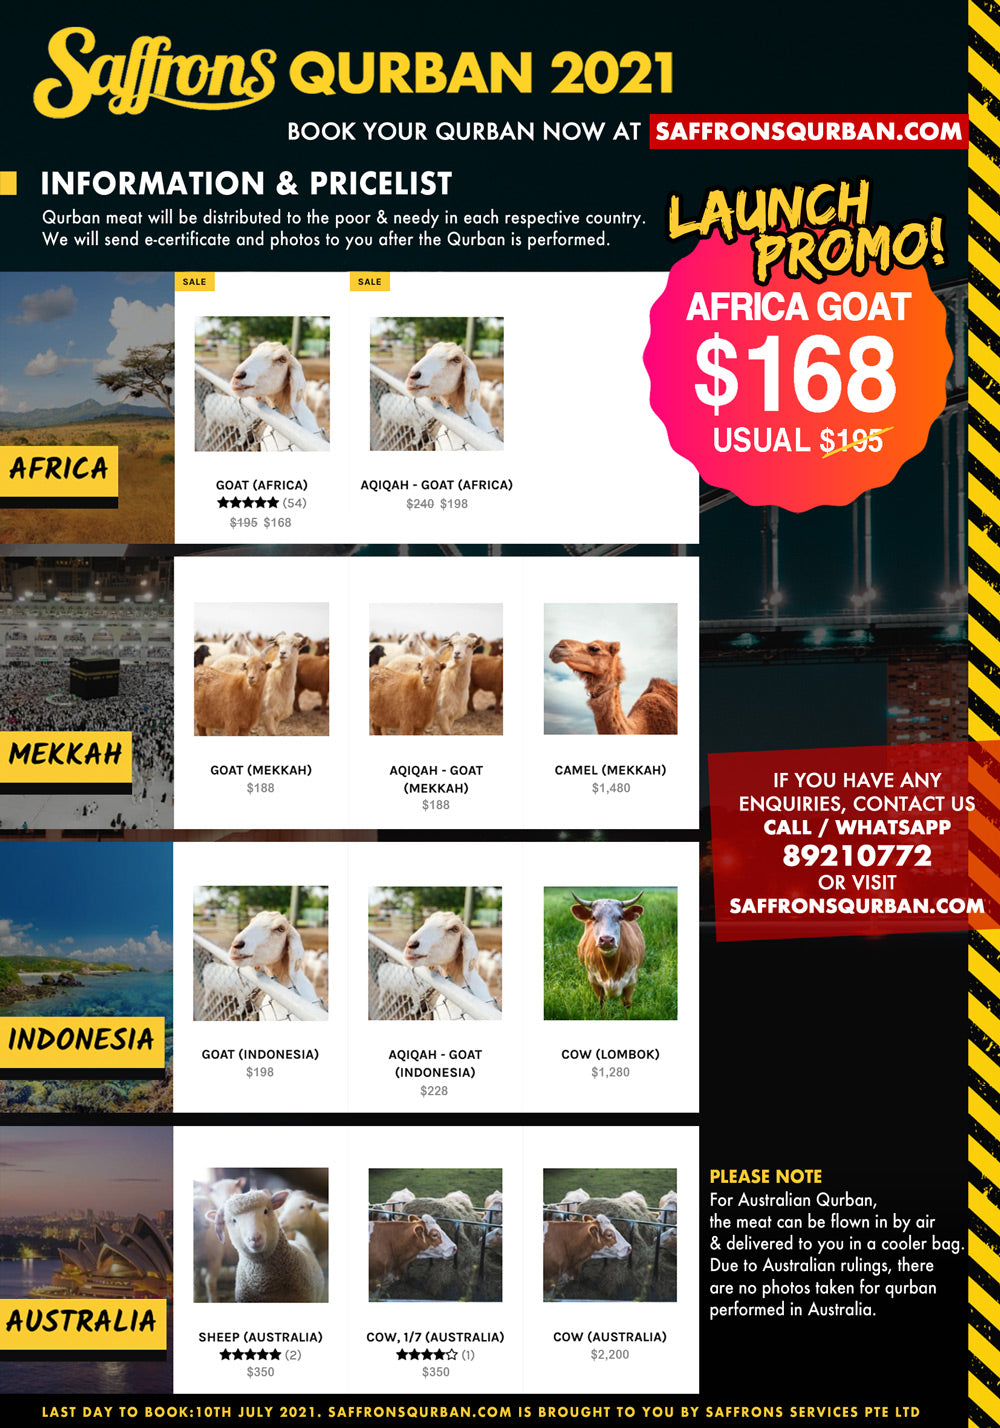 Price list and information for Saffrons Qurban 2021